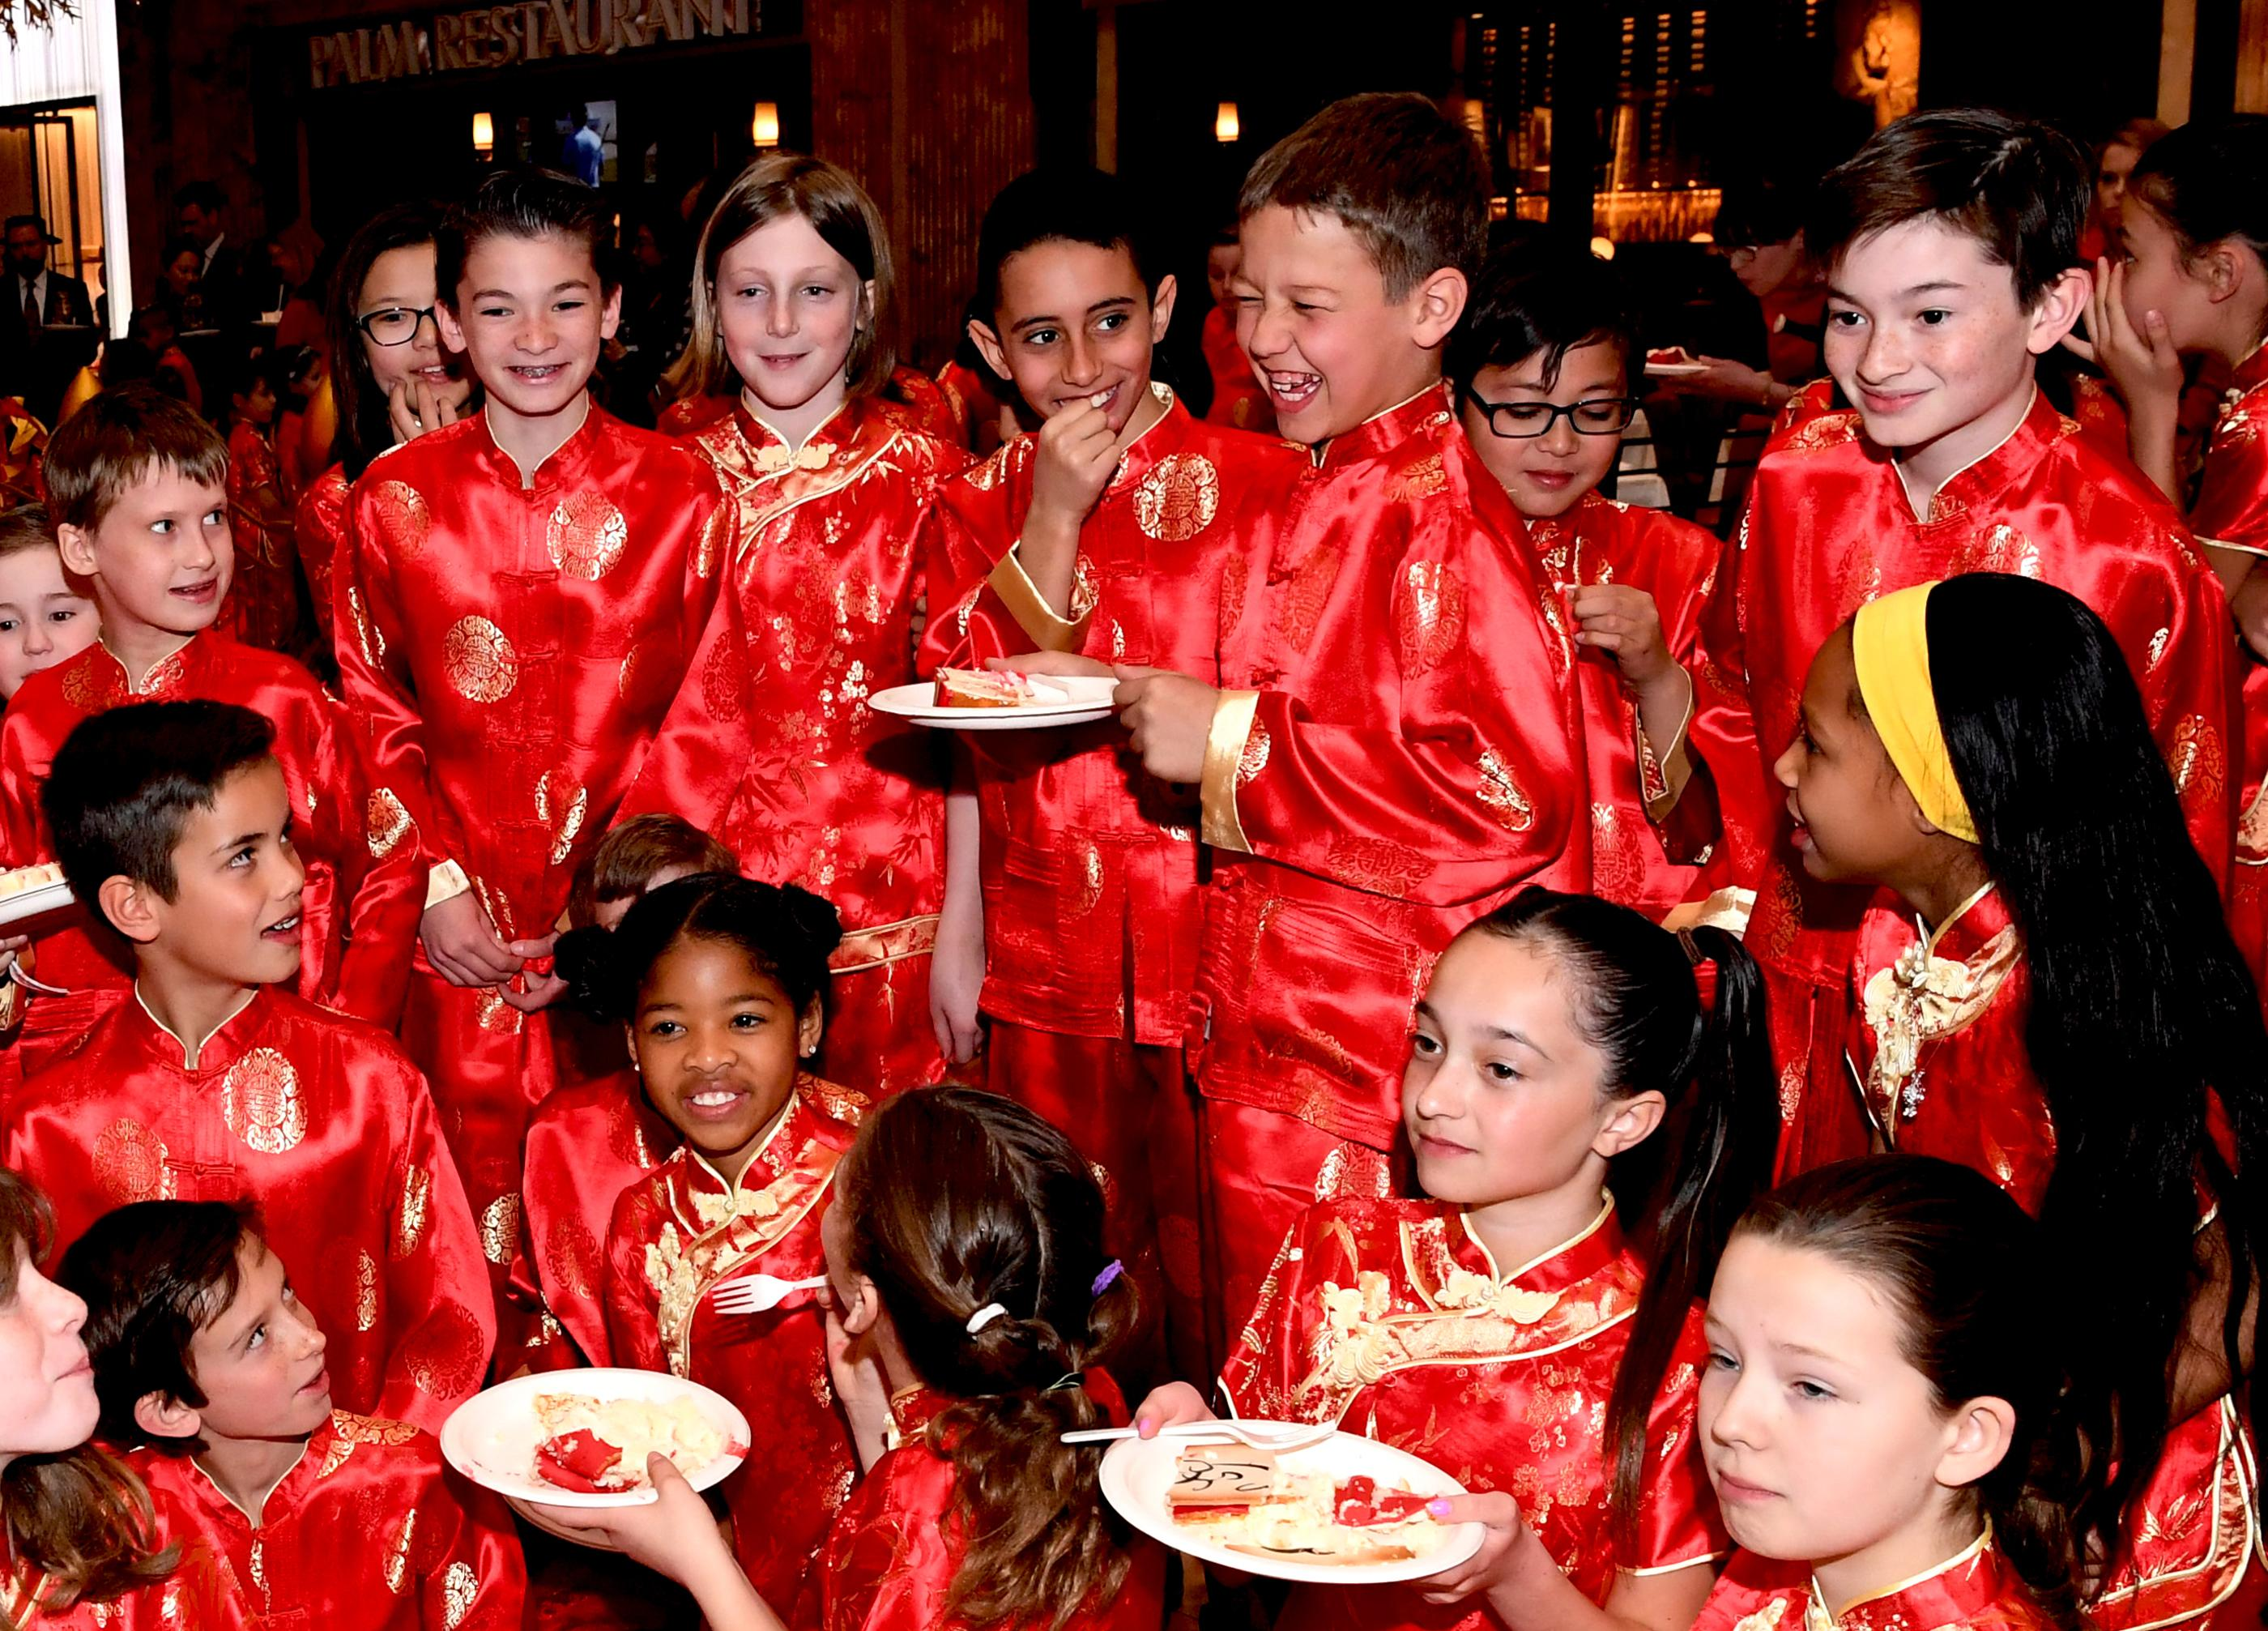 Meadows School 22nd Annual Dragon Parade in honor of Chinese New Year, the Year of the Dog, at Caesars Forum Shops. At the end of the parade students are treated to a surprise Year of the Dog cake from Freed's Bakery. Thursday, February 16, 2018. CREDIT: Glenn Pinkerton/Las Vegas News Bureau